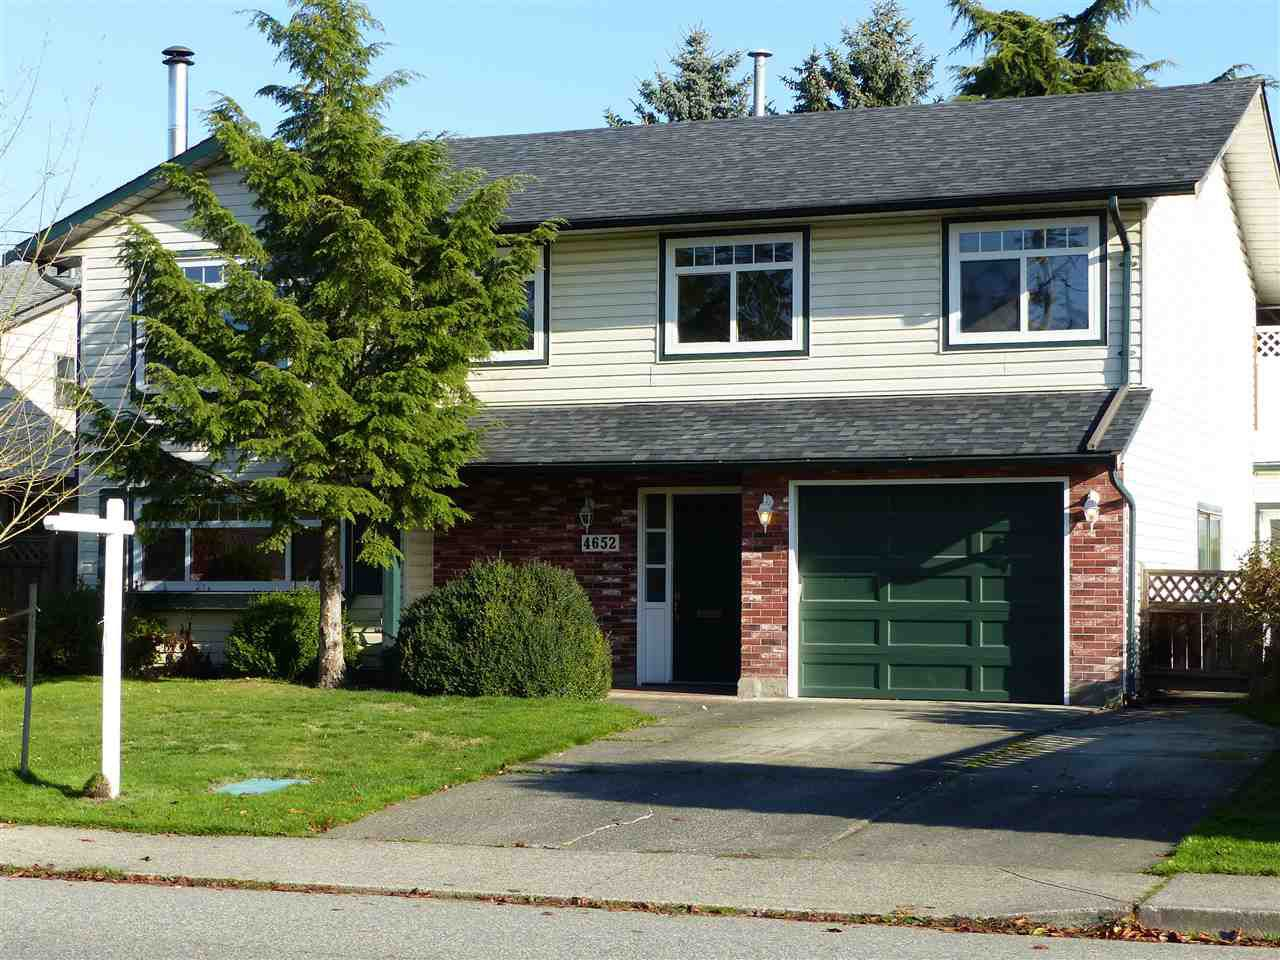 """Main Photo: 4652 46A Street in Ladner: Ladner Elementary House for sale in """"LADNER"""" : MLS®# R2321925"""